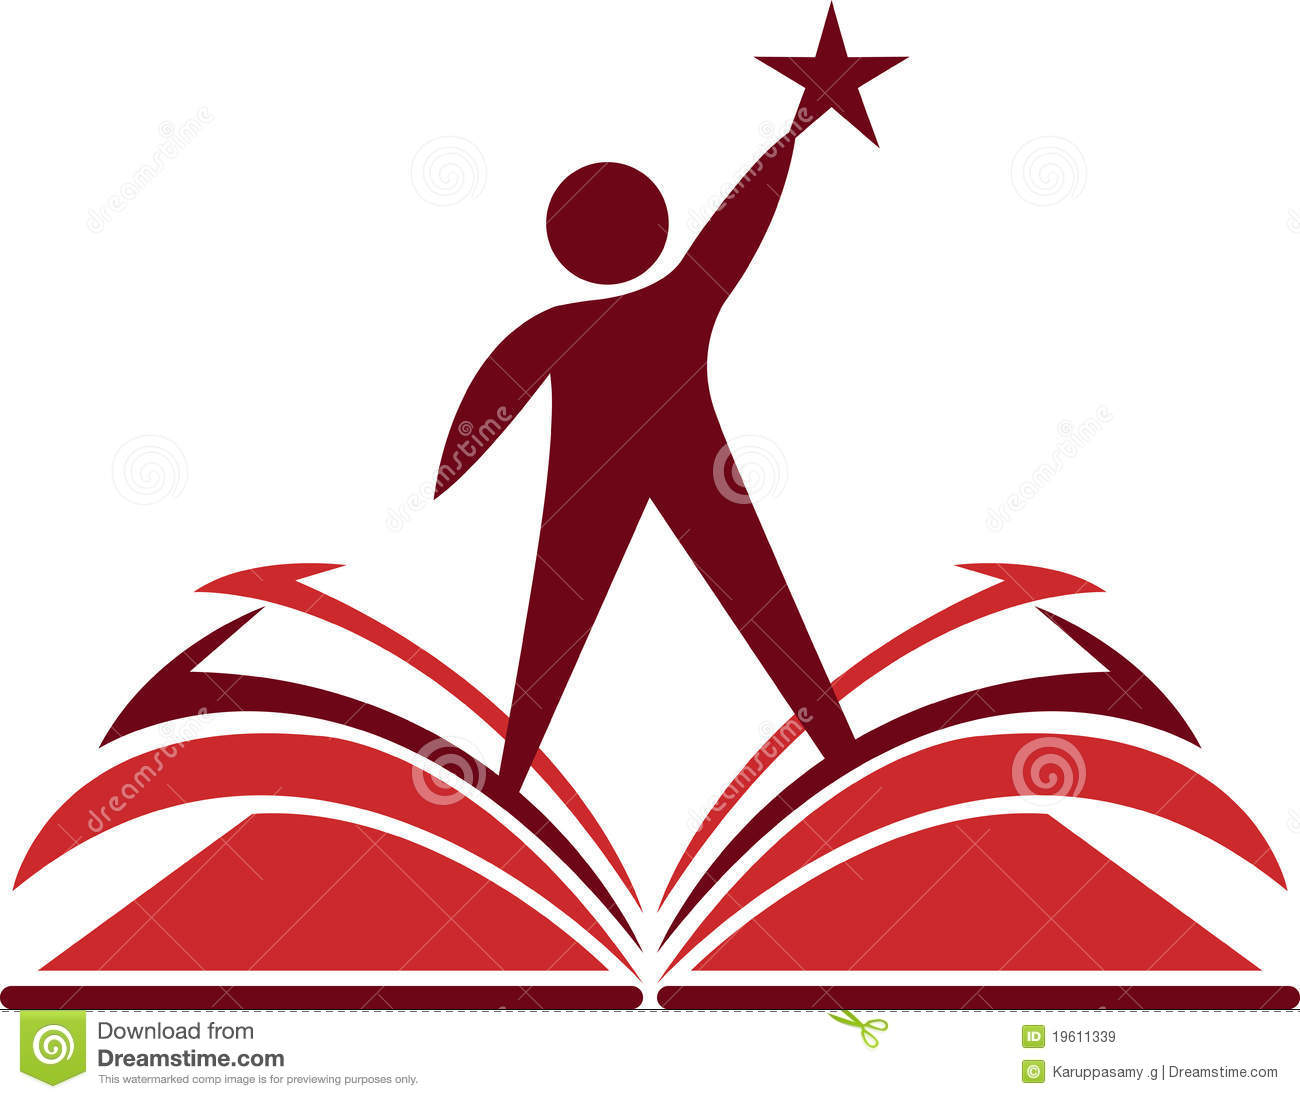 aim book knowledge royalty free stock images image 19611339 open book clip art transparent background open book clipart kids